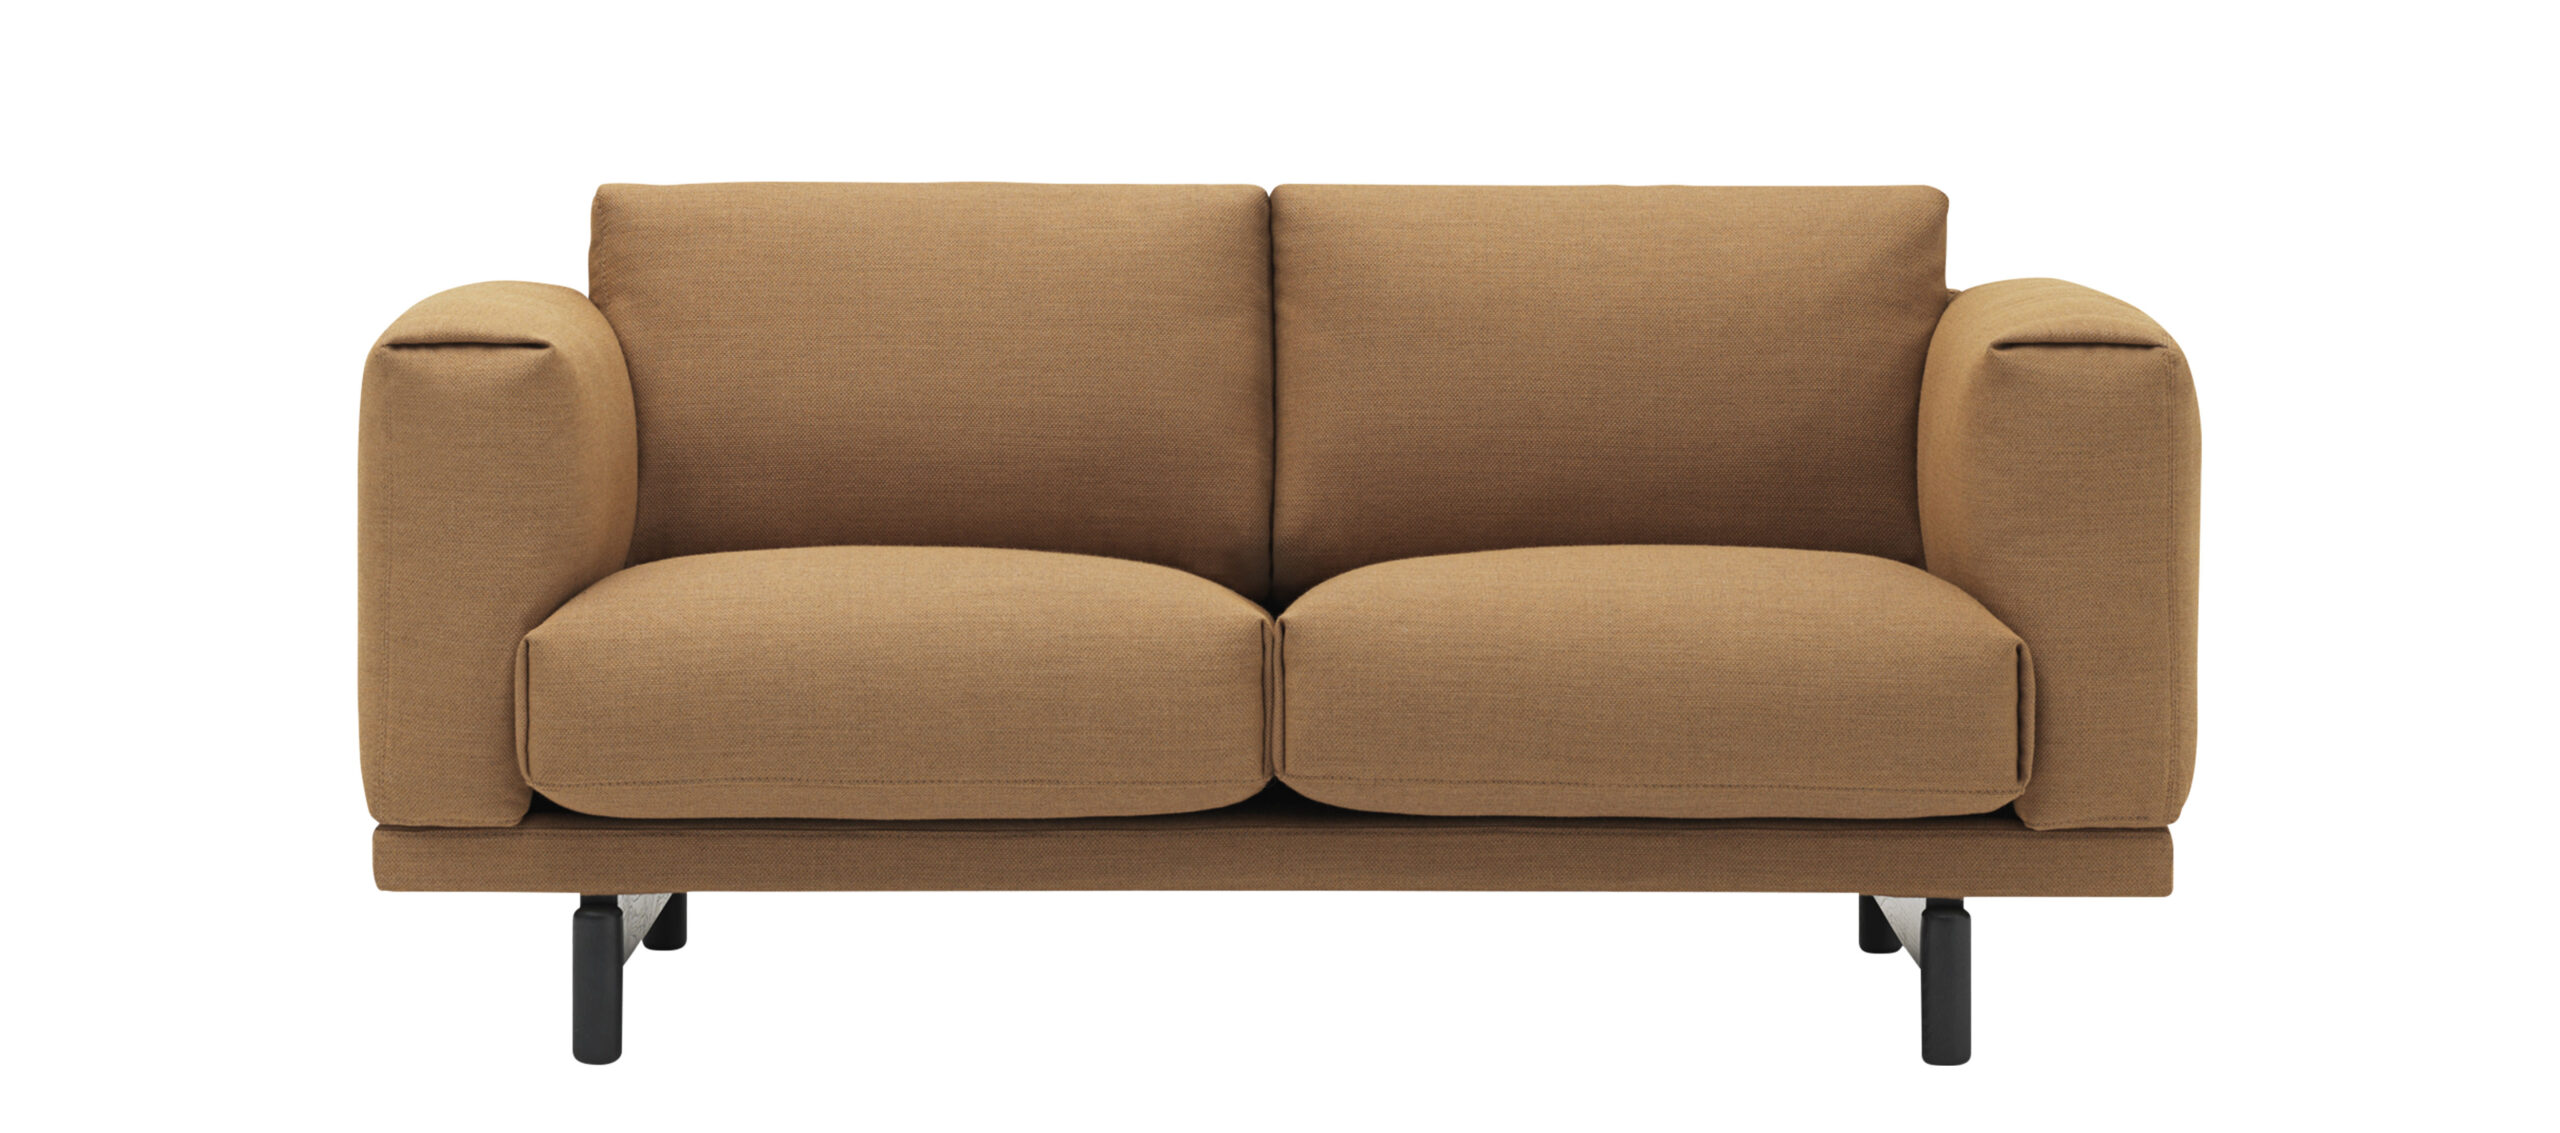 Full Size of Muuto Sofa Sofabord Xl Rest Connect Uk Outline Leather Tilbud Dimensions Chaise Longue 2 Seater Around Workshop Oslo Furniture Airy Cecilie Manz Sitze Studio Sofa Muuto Sofa